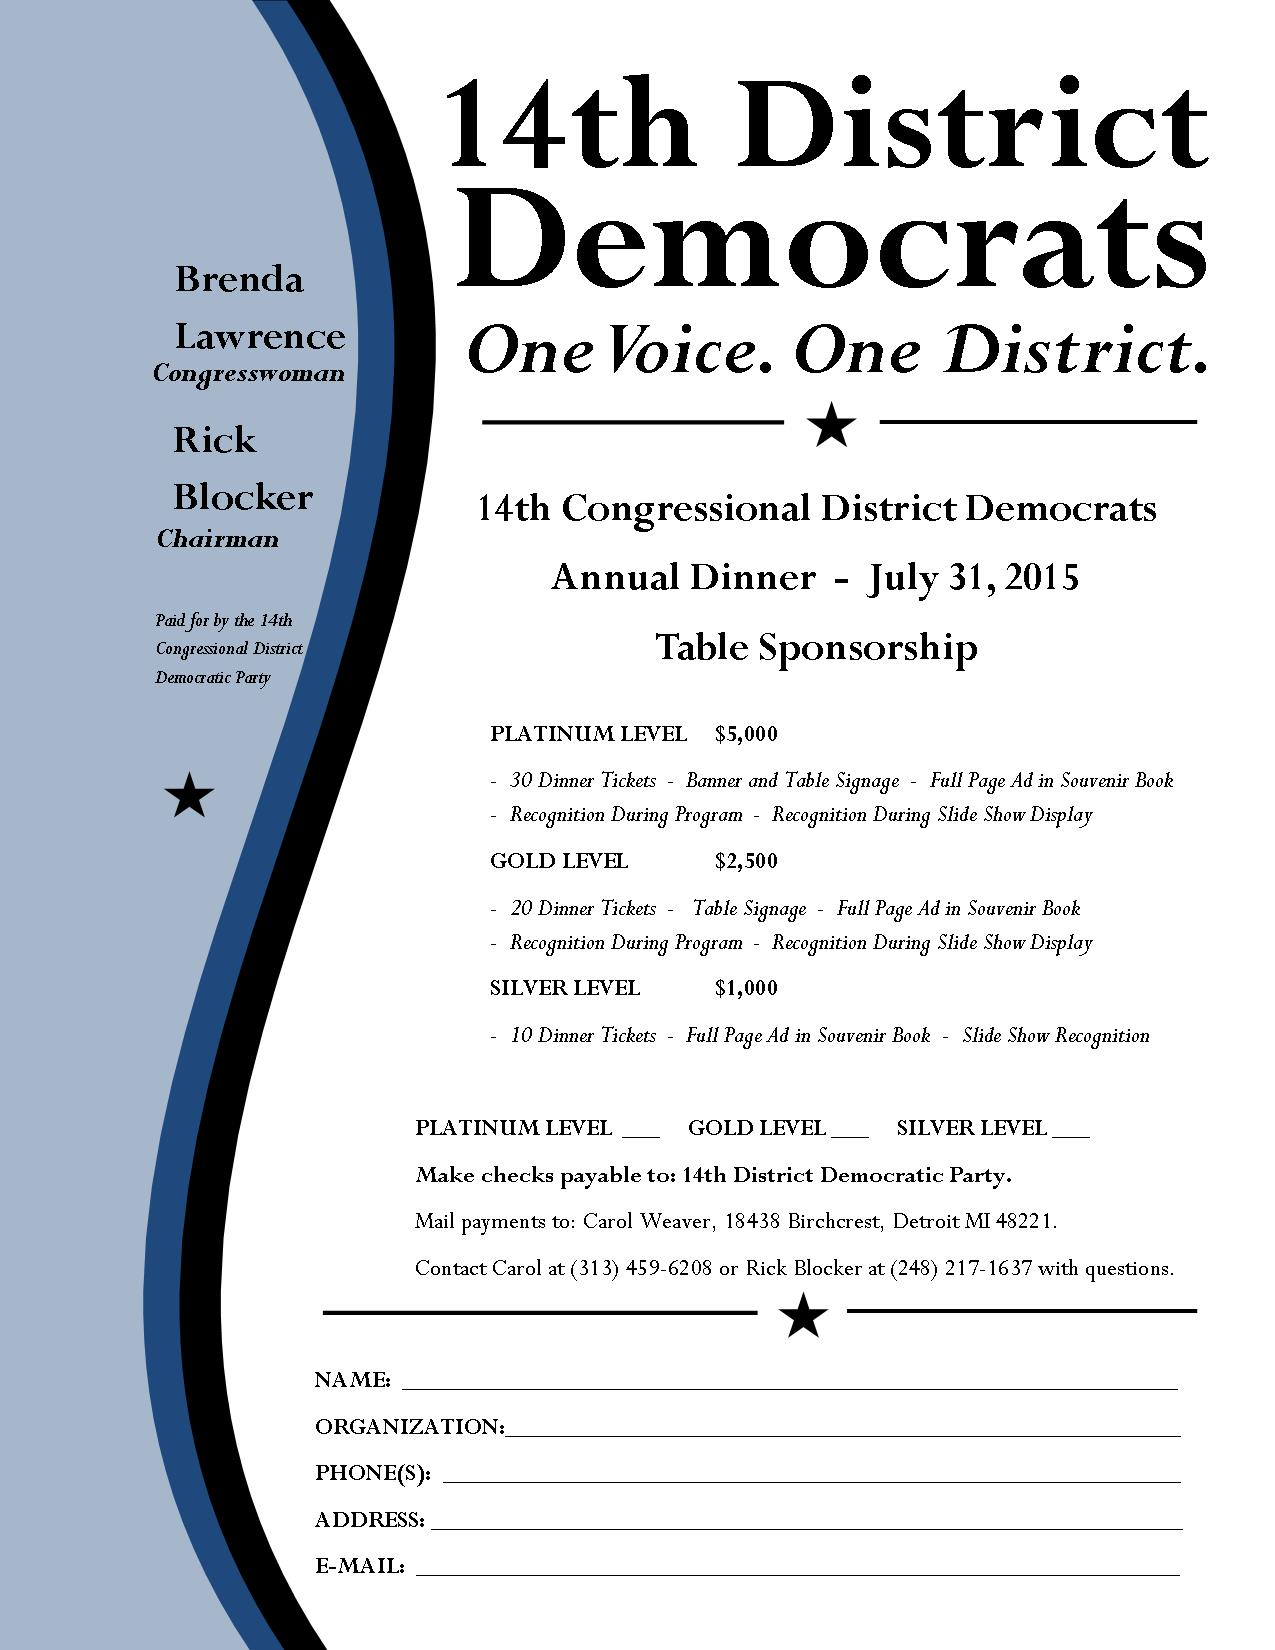 2015 14th District Annual Dinner Table Sponsorship Form